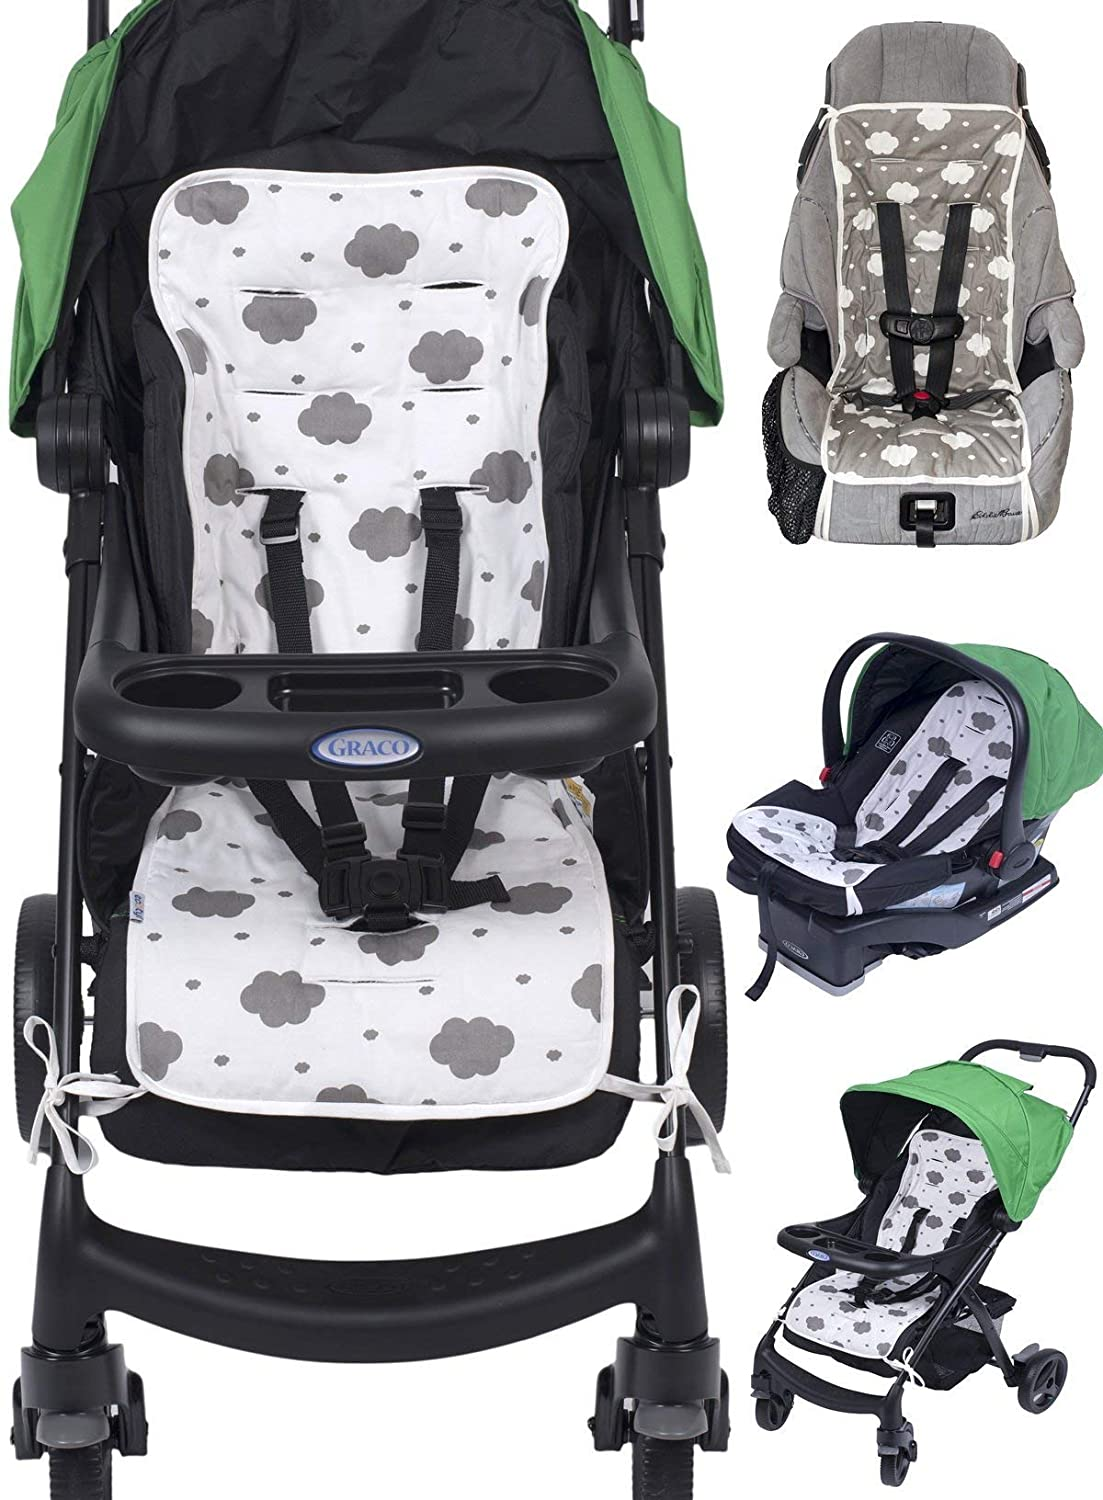 Reversible Pure Cotton Universal Baby Seat Liner For Stroller Car Seat Jogger Bouncer Thick Cushion